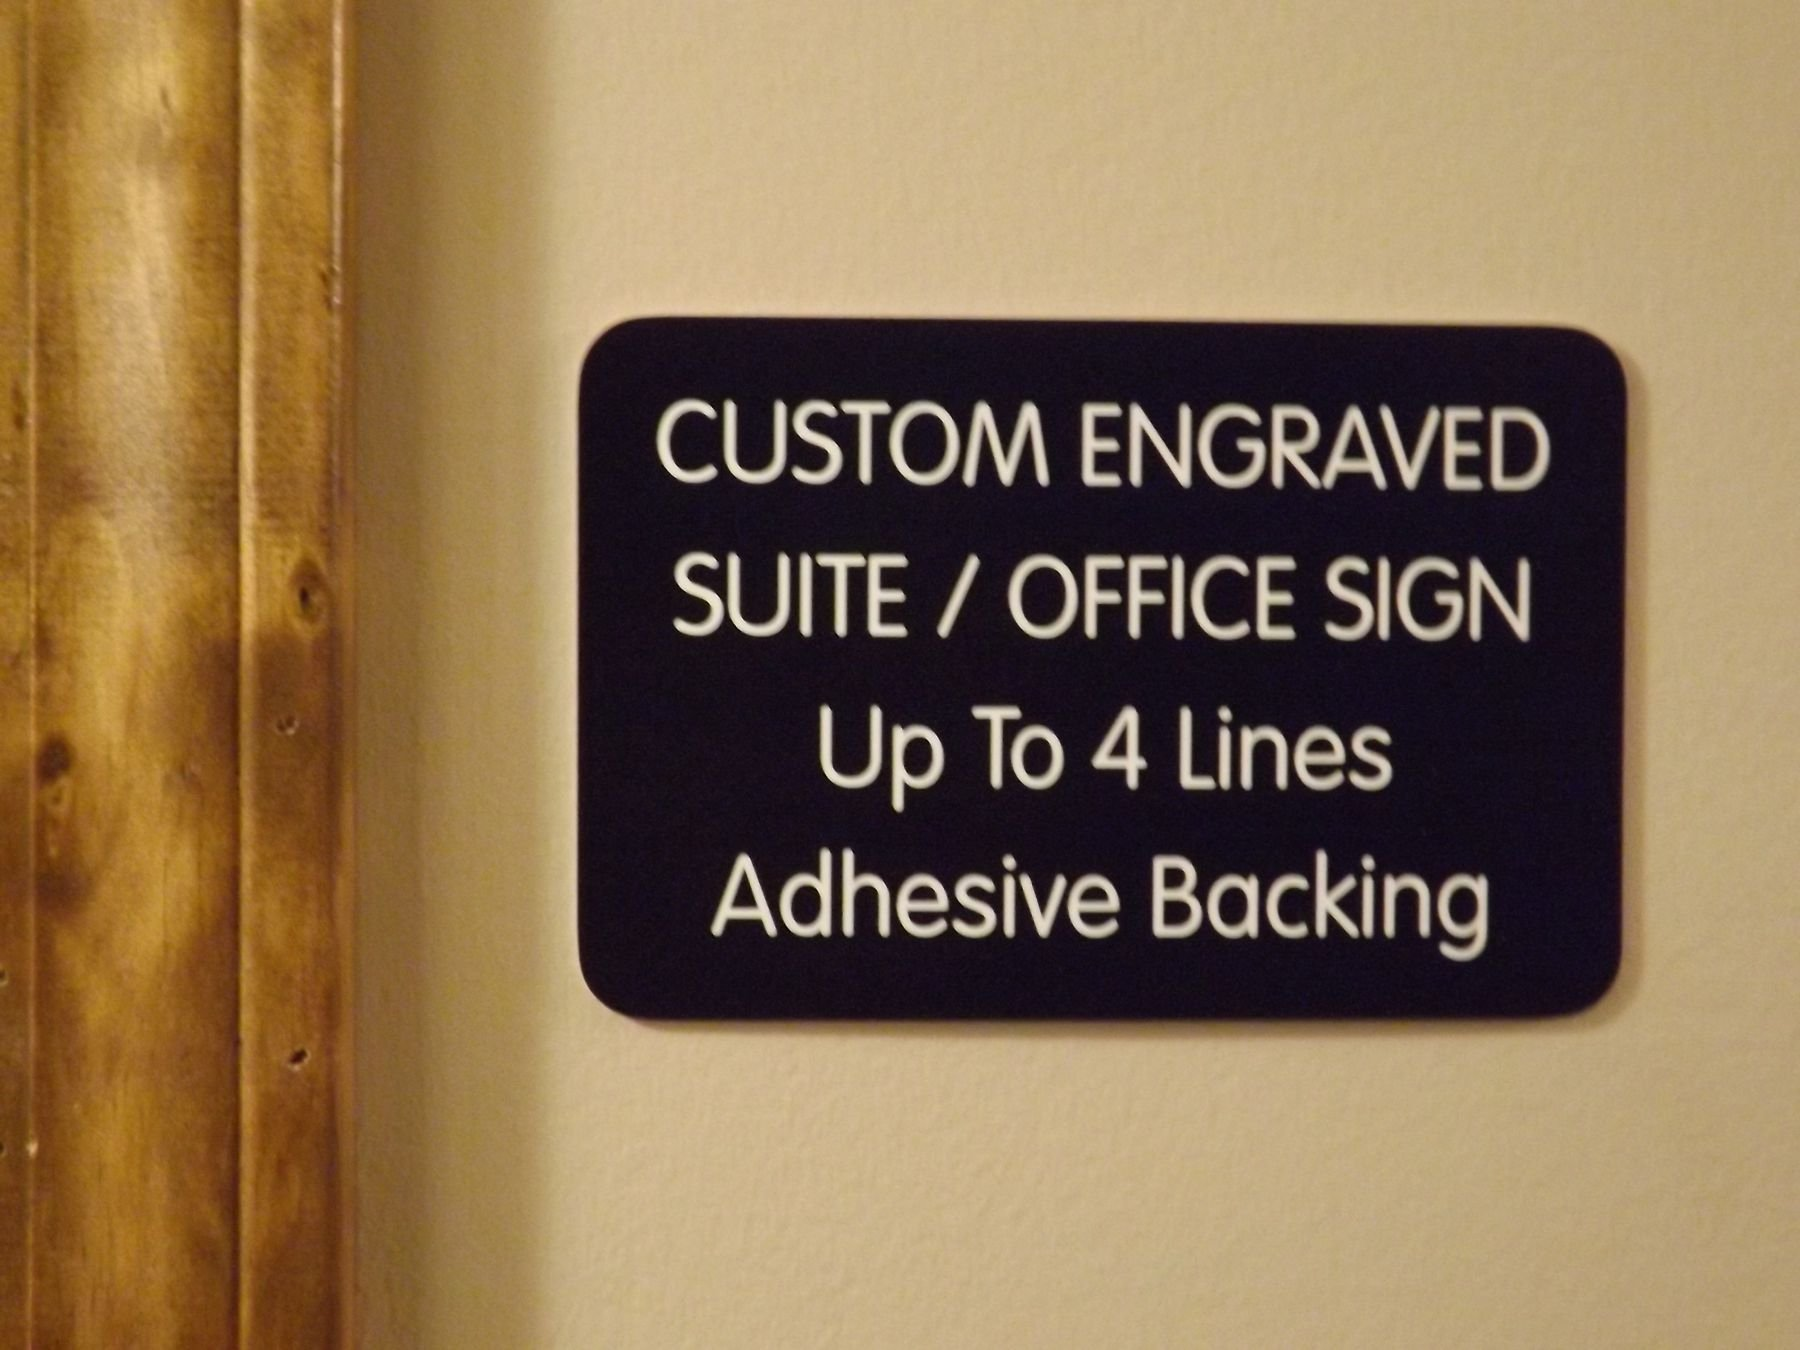 Custom Engraved 4x6 Black w/ White Lettering Door Suite Wall Sign | Name Plate | Personalized Wall Plaque | Business Doctor Law Firm Home Office Cafe Shop | Up to 4 Text Lines | Adhesive Backed by Jay Graphics (Image #3)